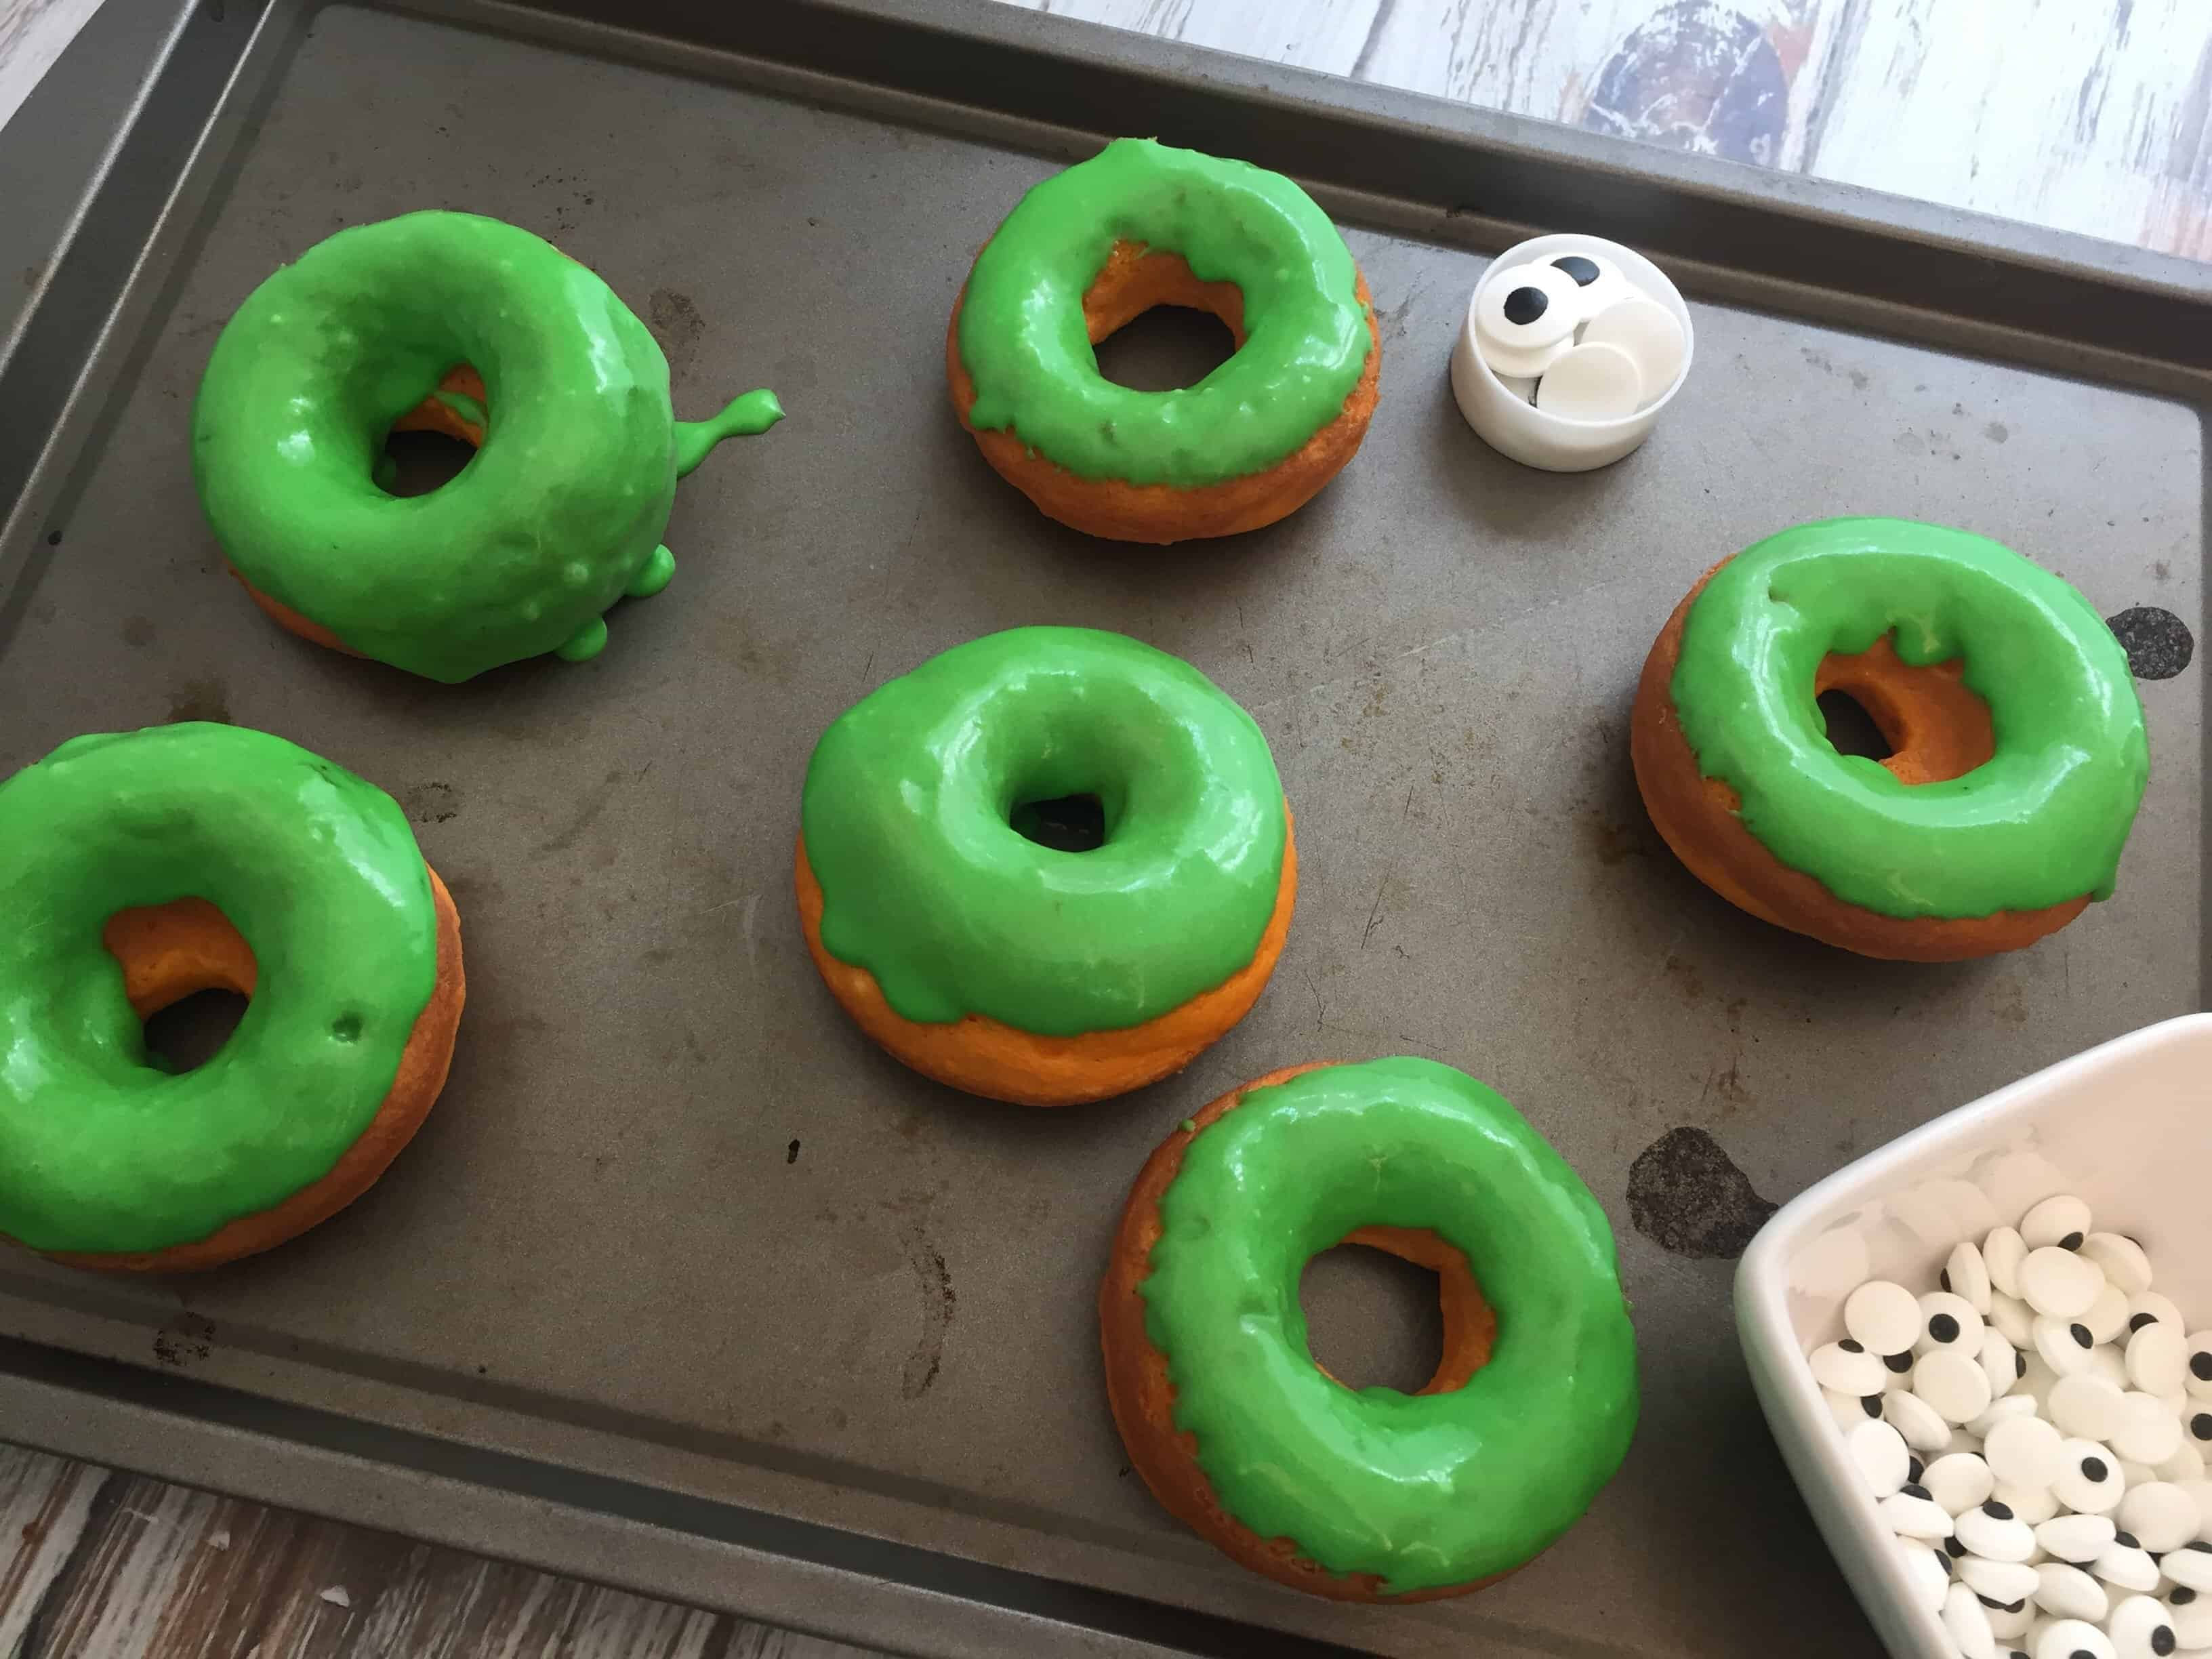 Glazing the Halloween Monster Donuts